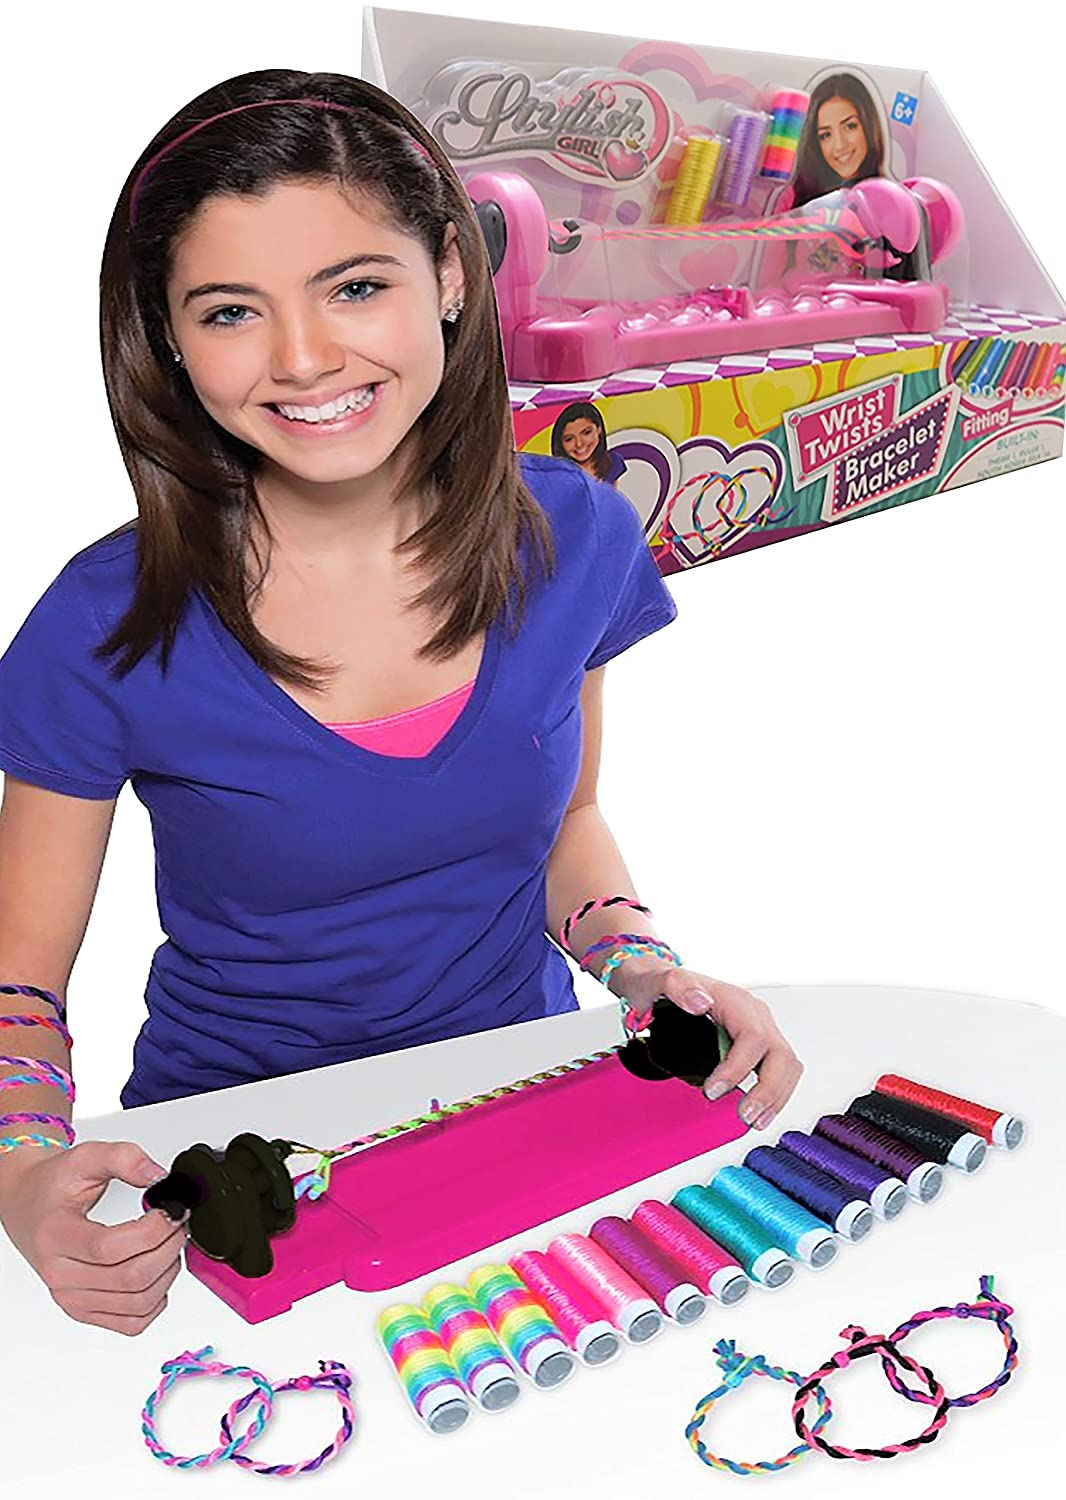 Allkindathings stylish Girl Wrist Twists and Wear Bracelet Maker Kit with 14 Colour Twine Three Bowness Ltd 857